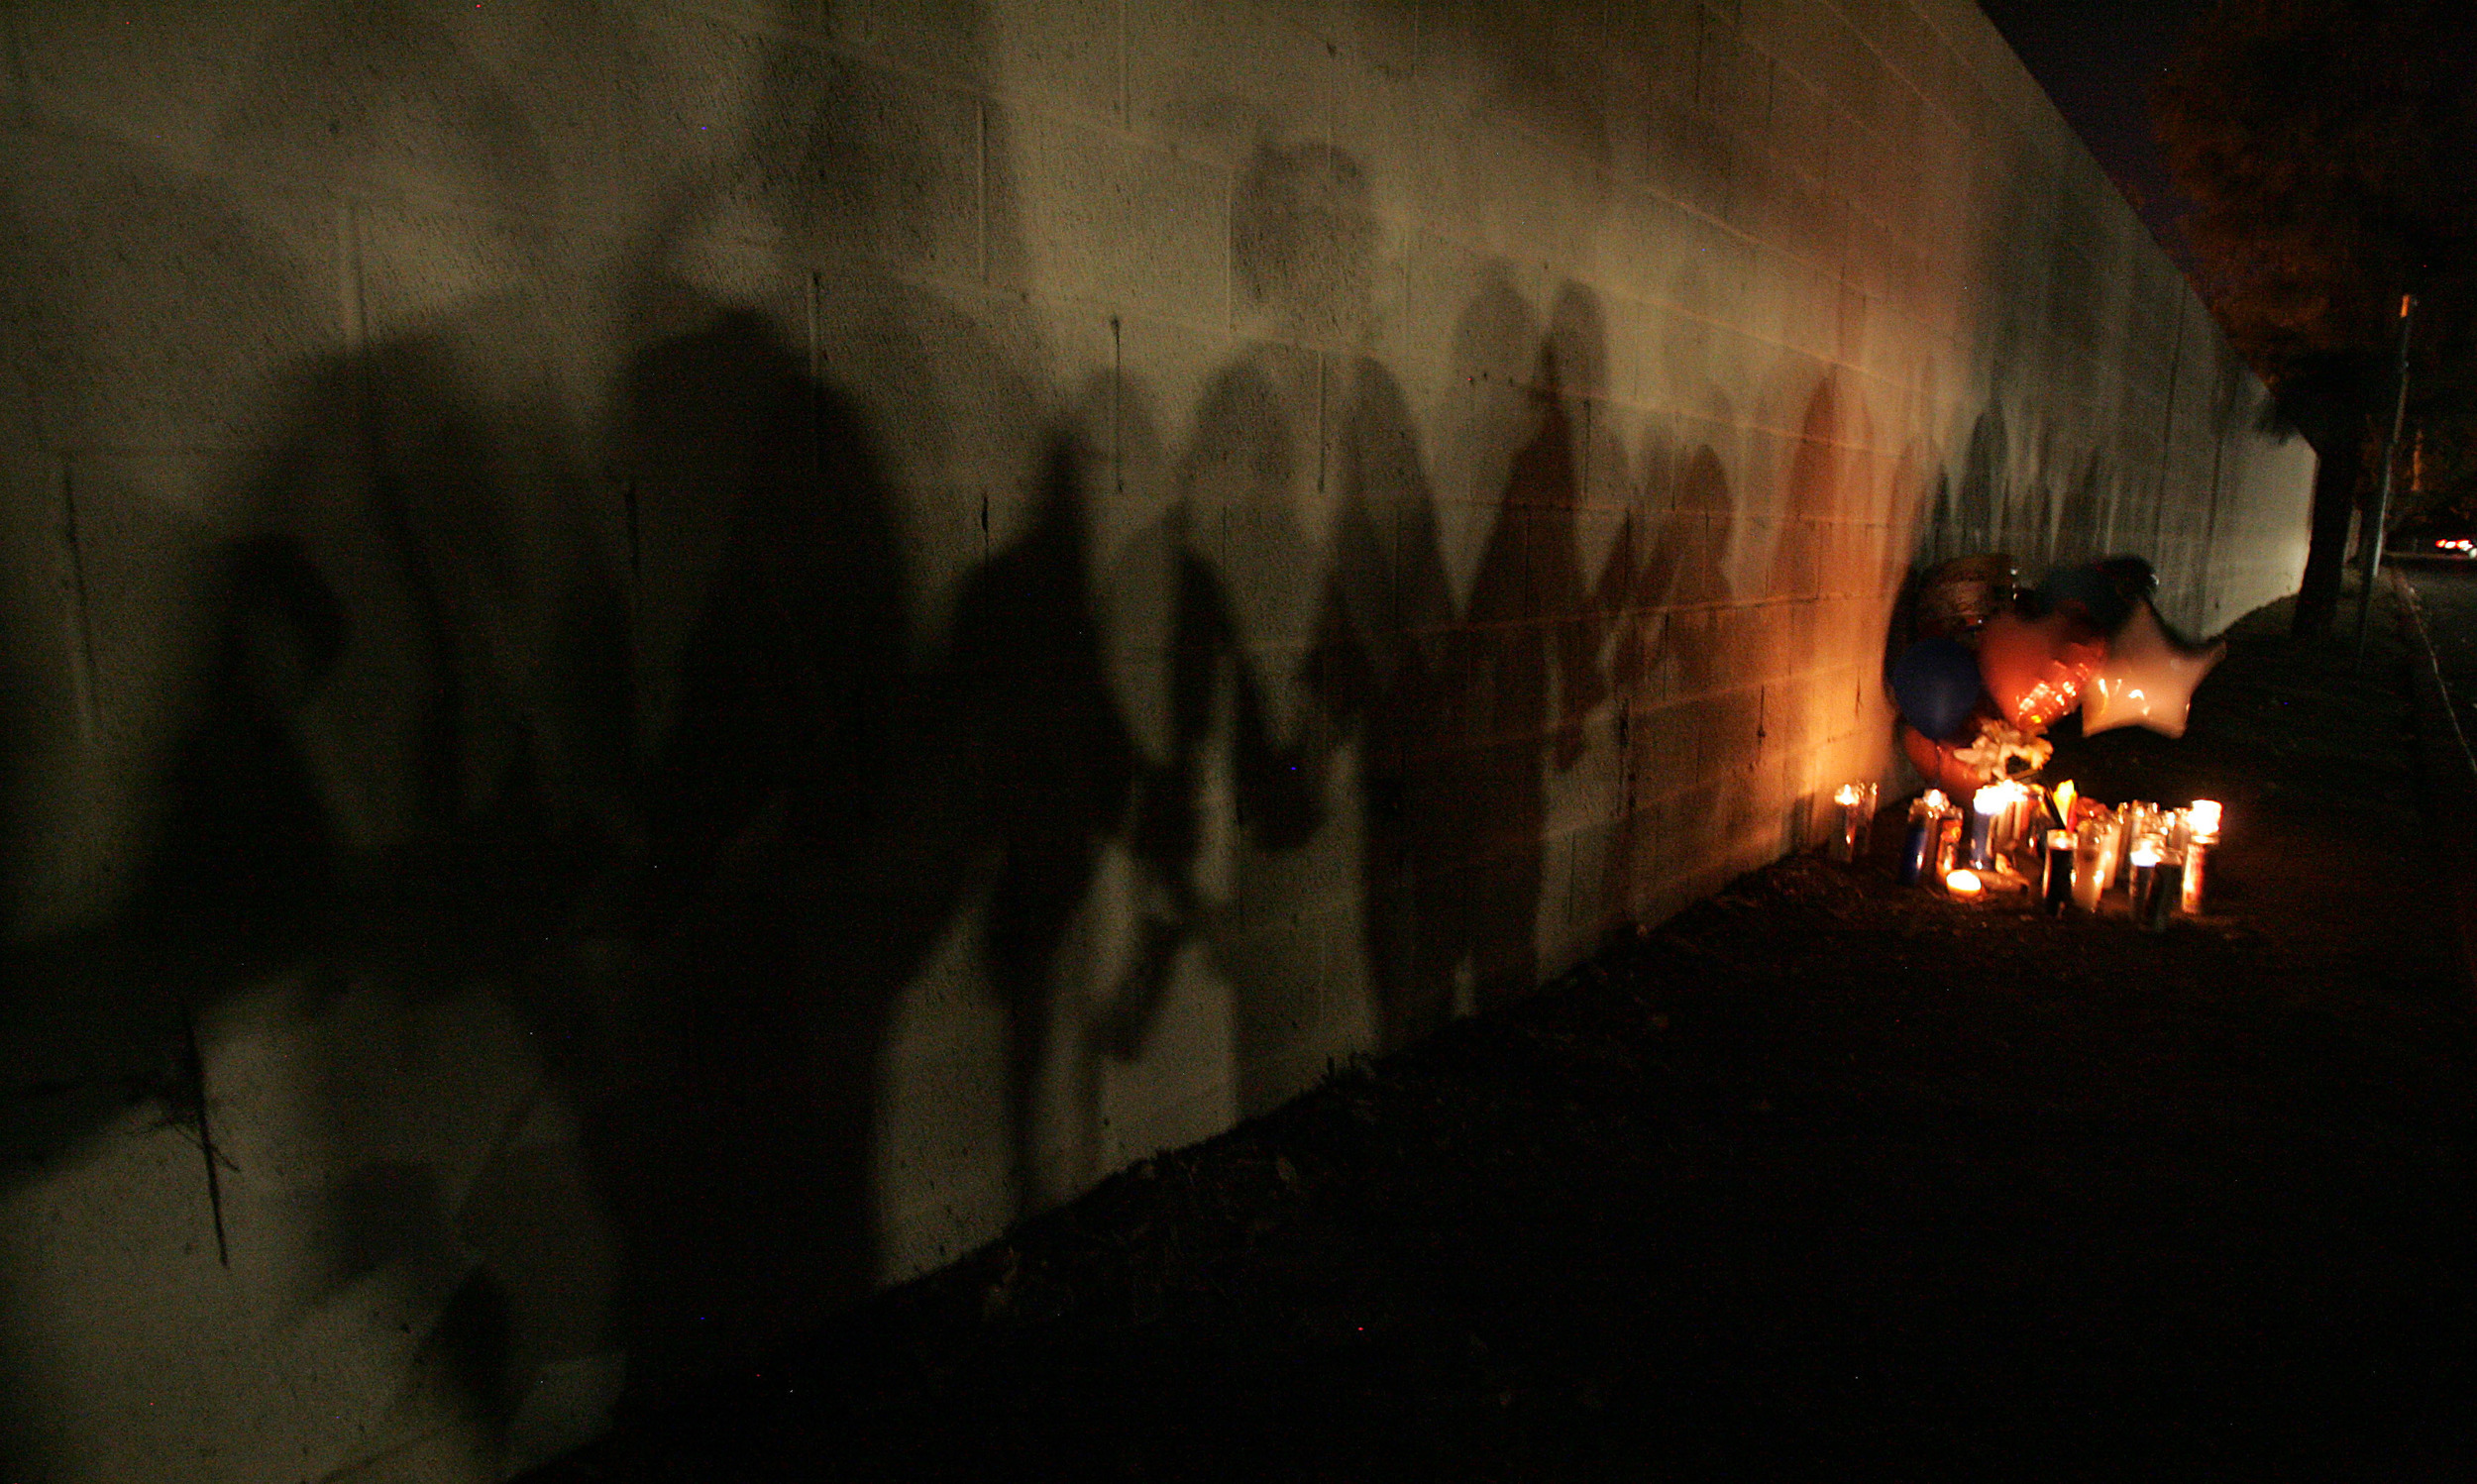 THe shadows of family and friends as they hold a candle light vigil for Isaac Kelly, 33, who was shot and killed by a security guard just after midnight in an apartment complex in the 150 block of E. Nuevo Road Saturday in Perris, CA. October 3, 2015.